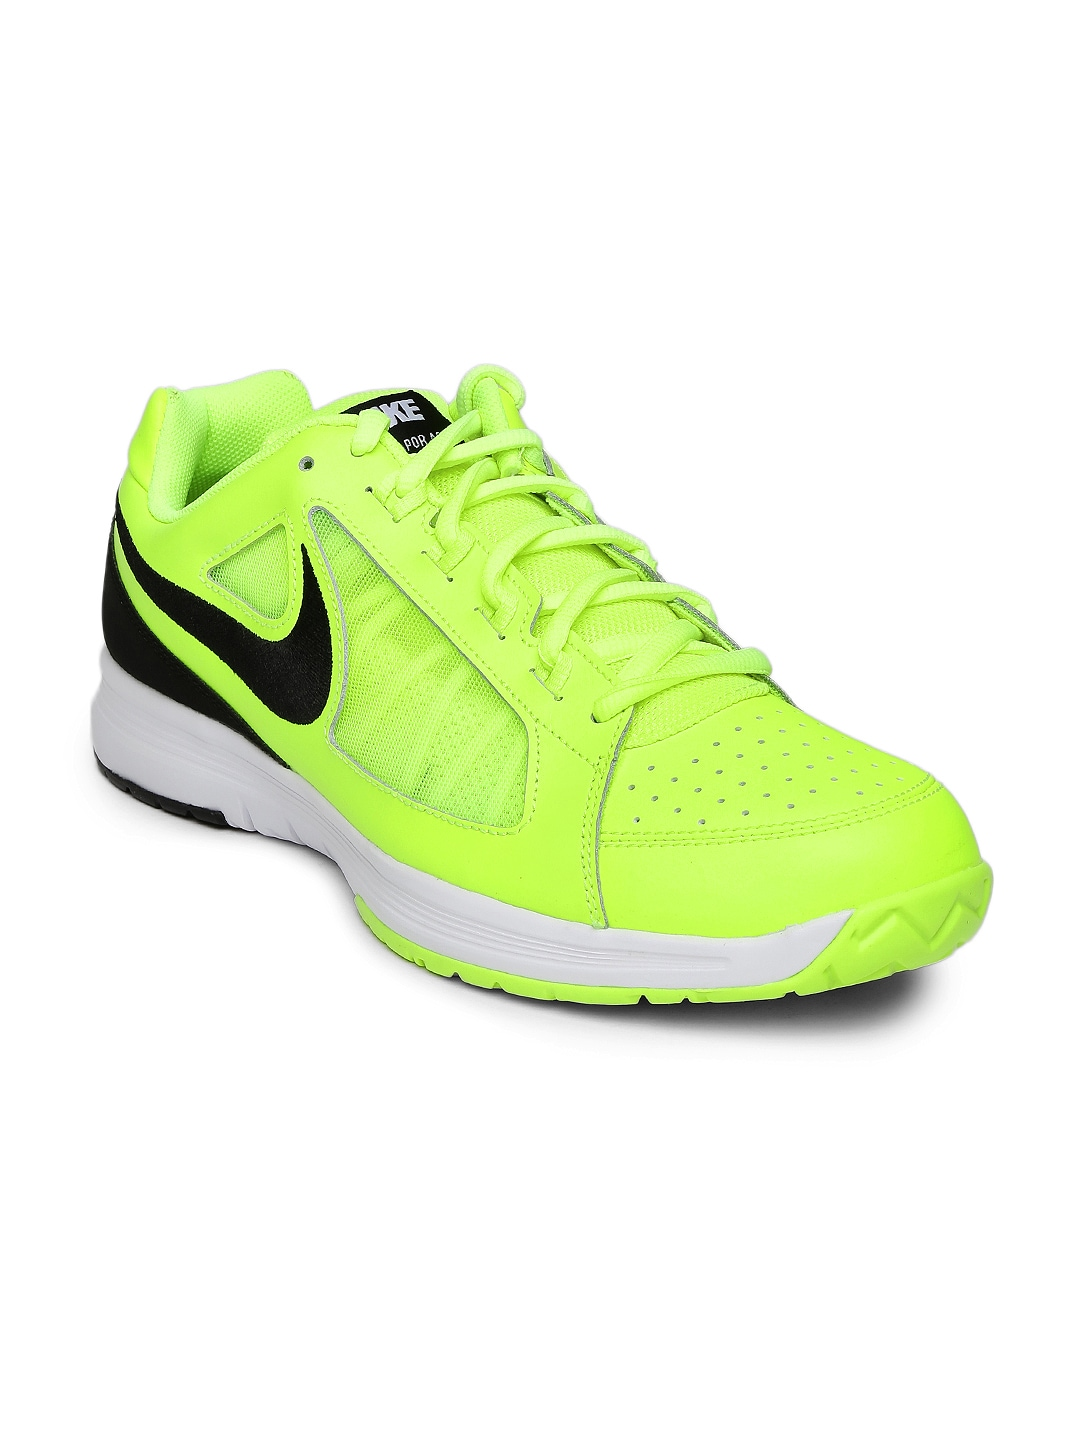 2d8f1b6da319b1 Nike 724868-701 Men Fluorescent Green Air Vapor Ace Leather Tennis Shoes-  Price in India